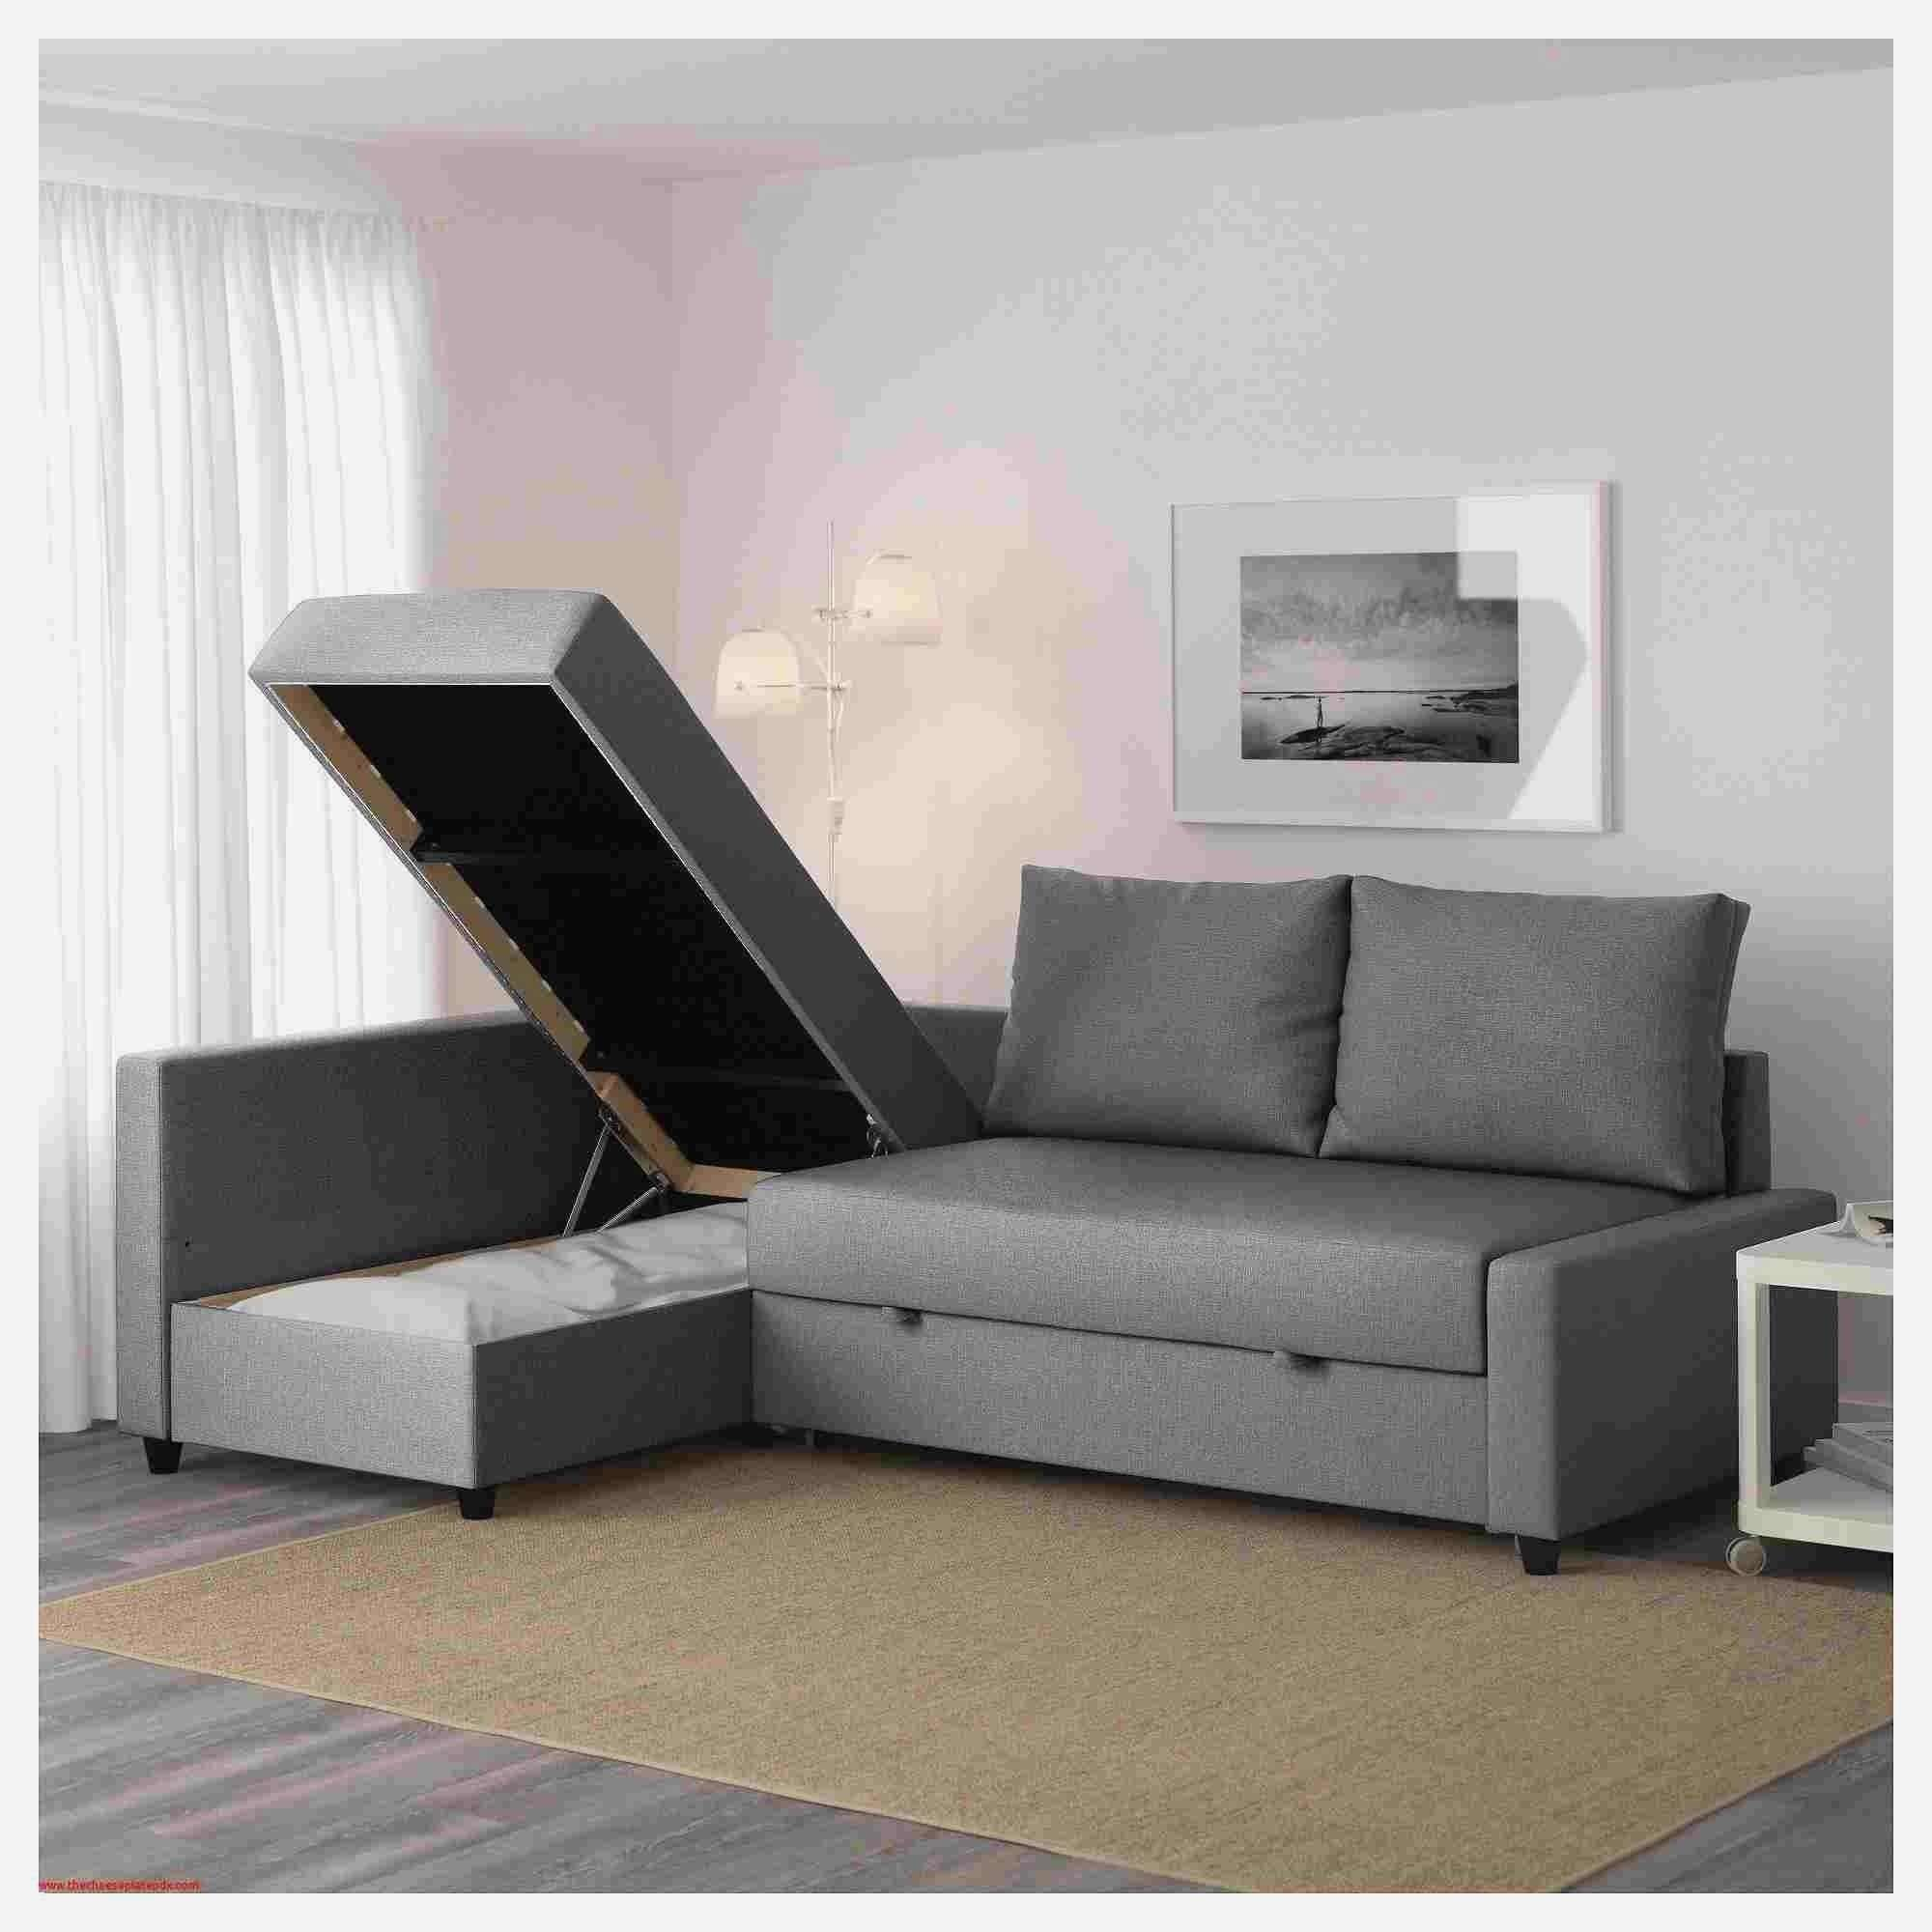 Couchecke Mit Schlaffunktion 36 Luxus Funktionsecke Mit Schlaffunktion Fotos Corner Sofa Bed With Storage Sofa Bed For Small Spaces Sofa Bed With Storage